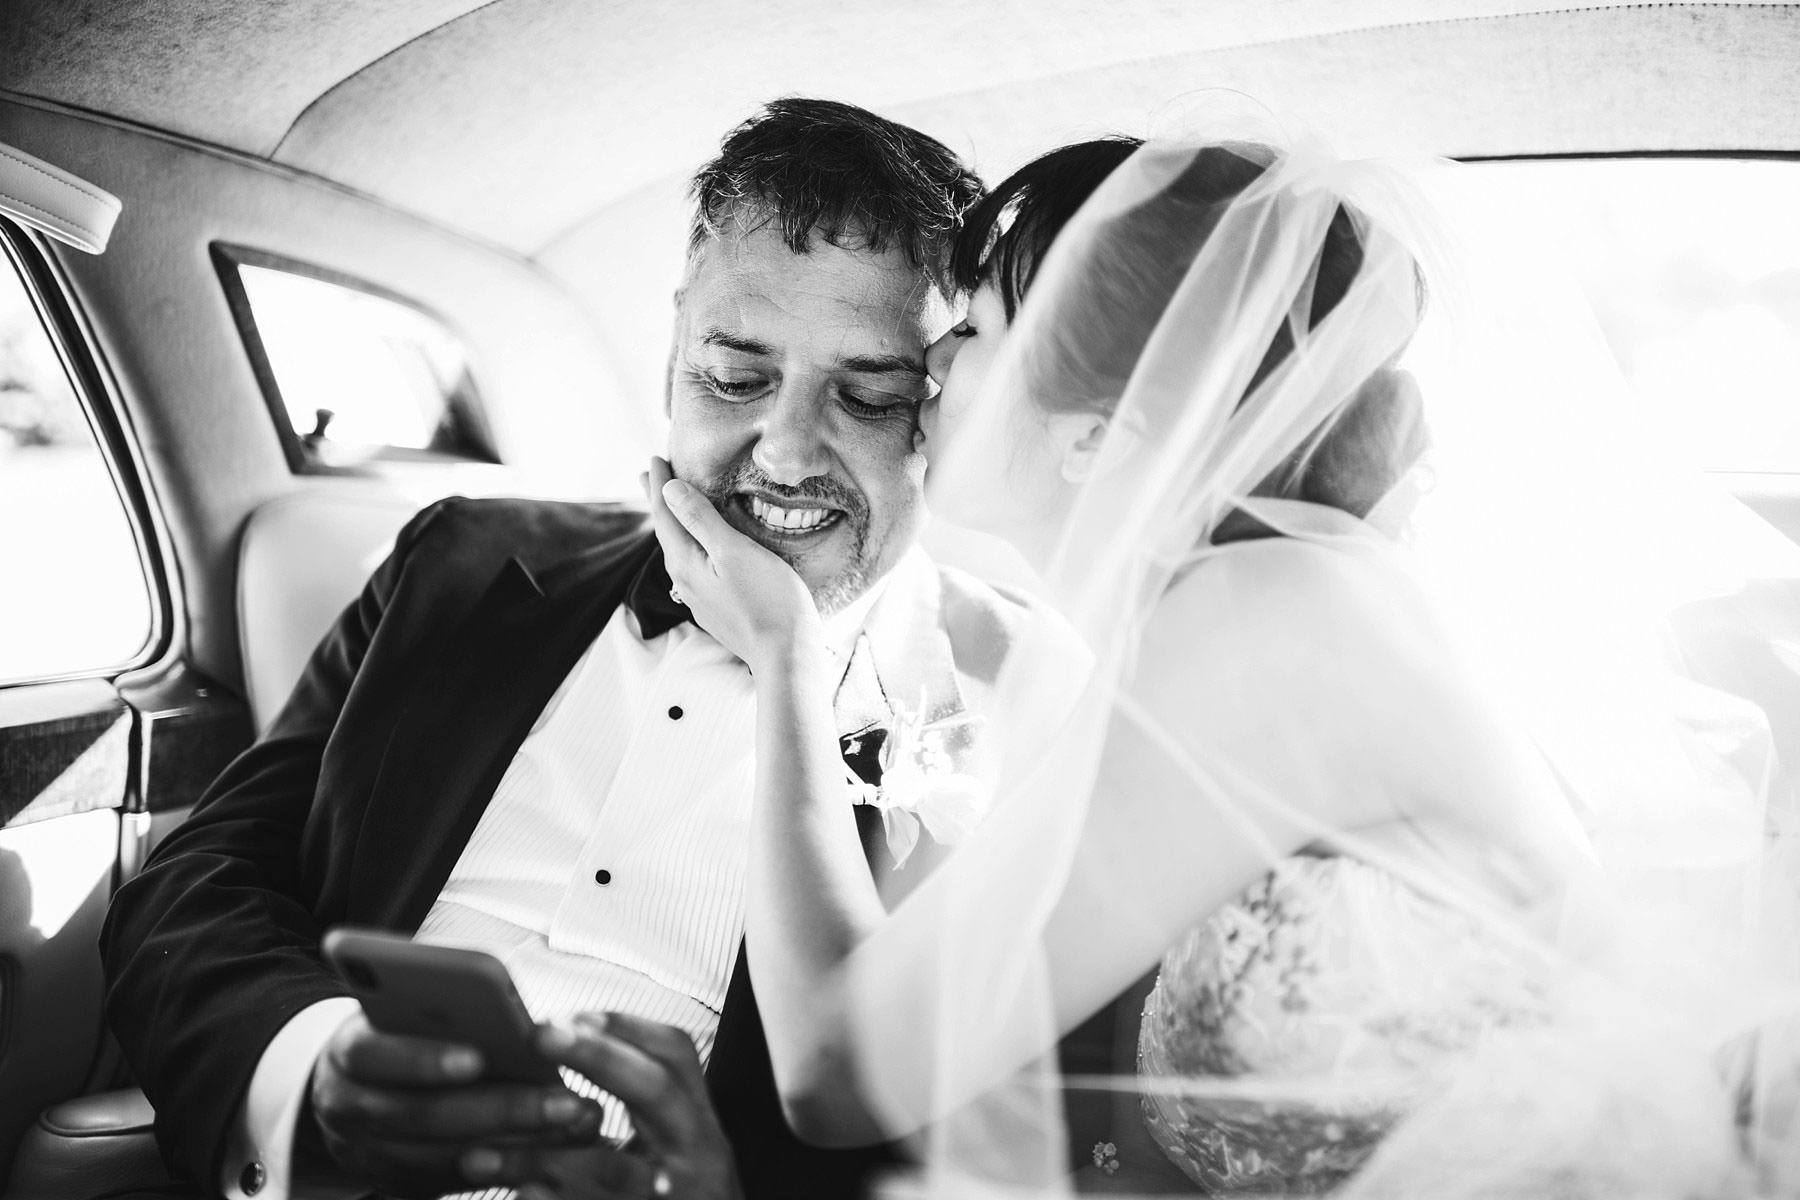 Lovely candid and delicate moment by bride and groom while seated in vintage luxury car. Intimate destination wedding in Florence